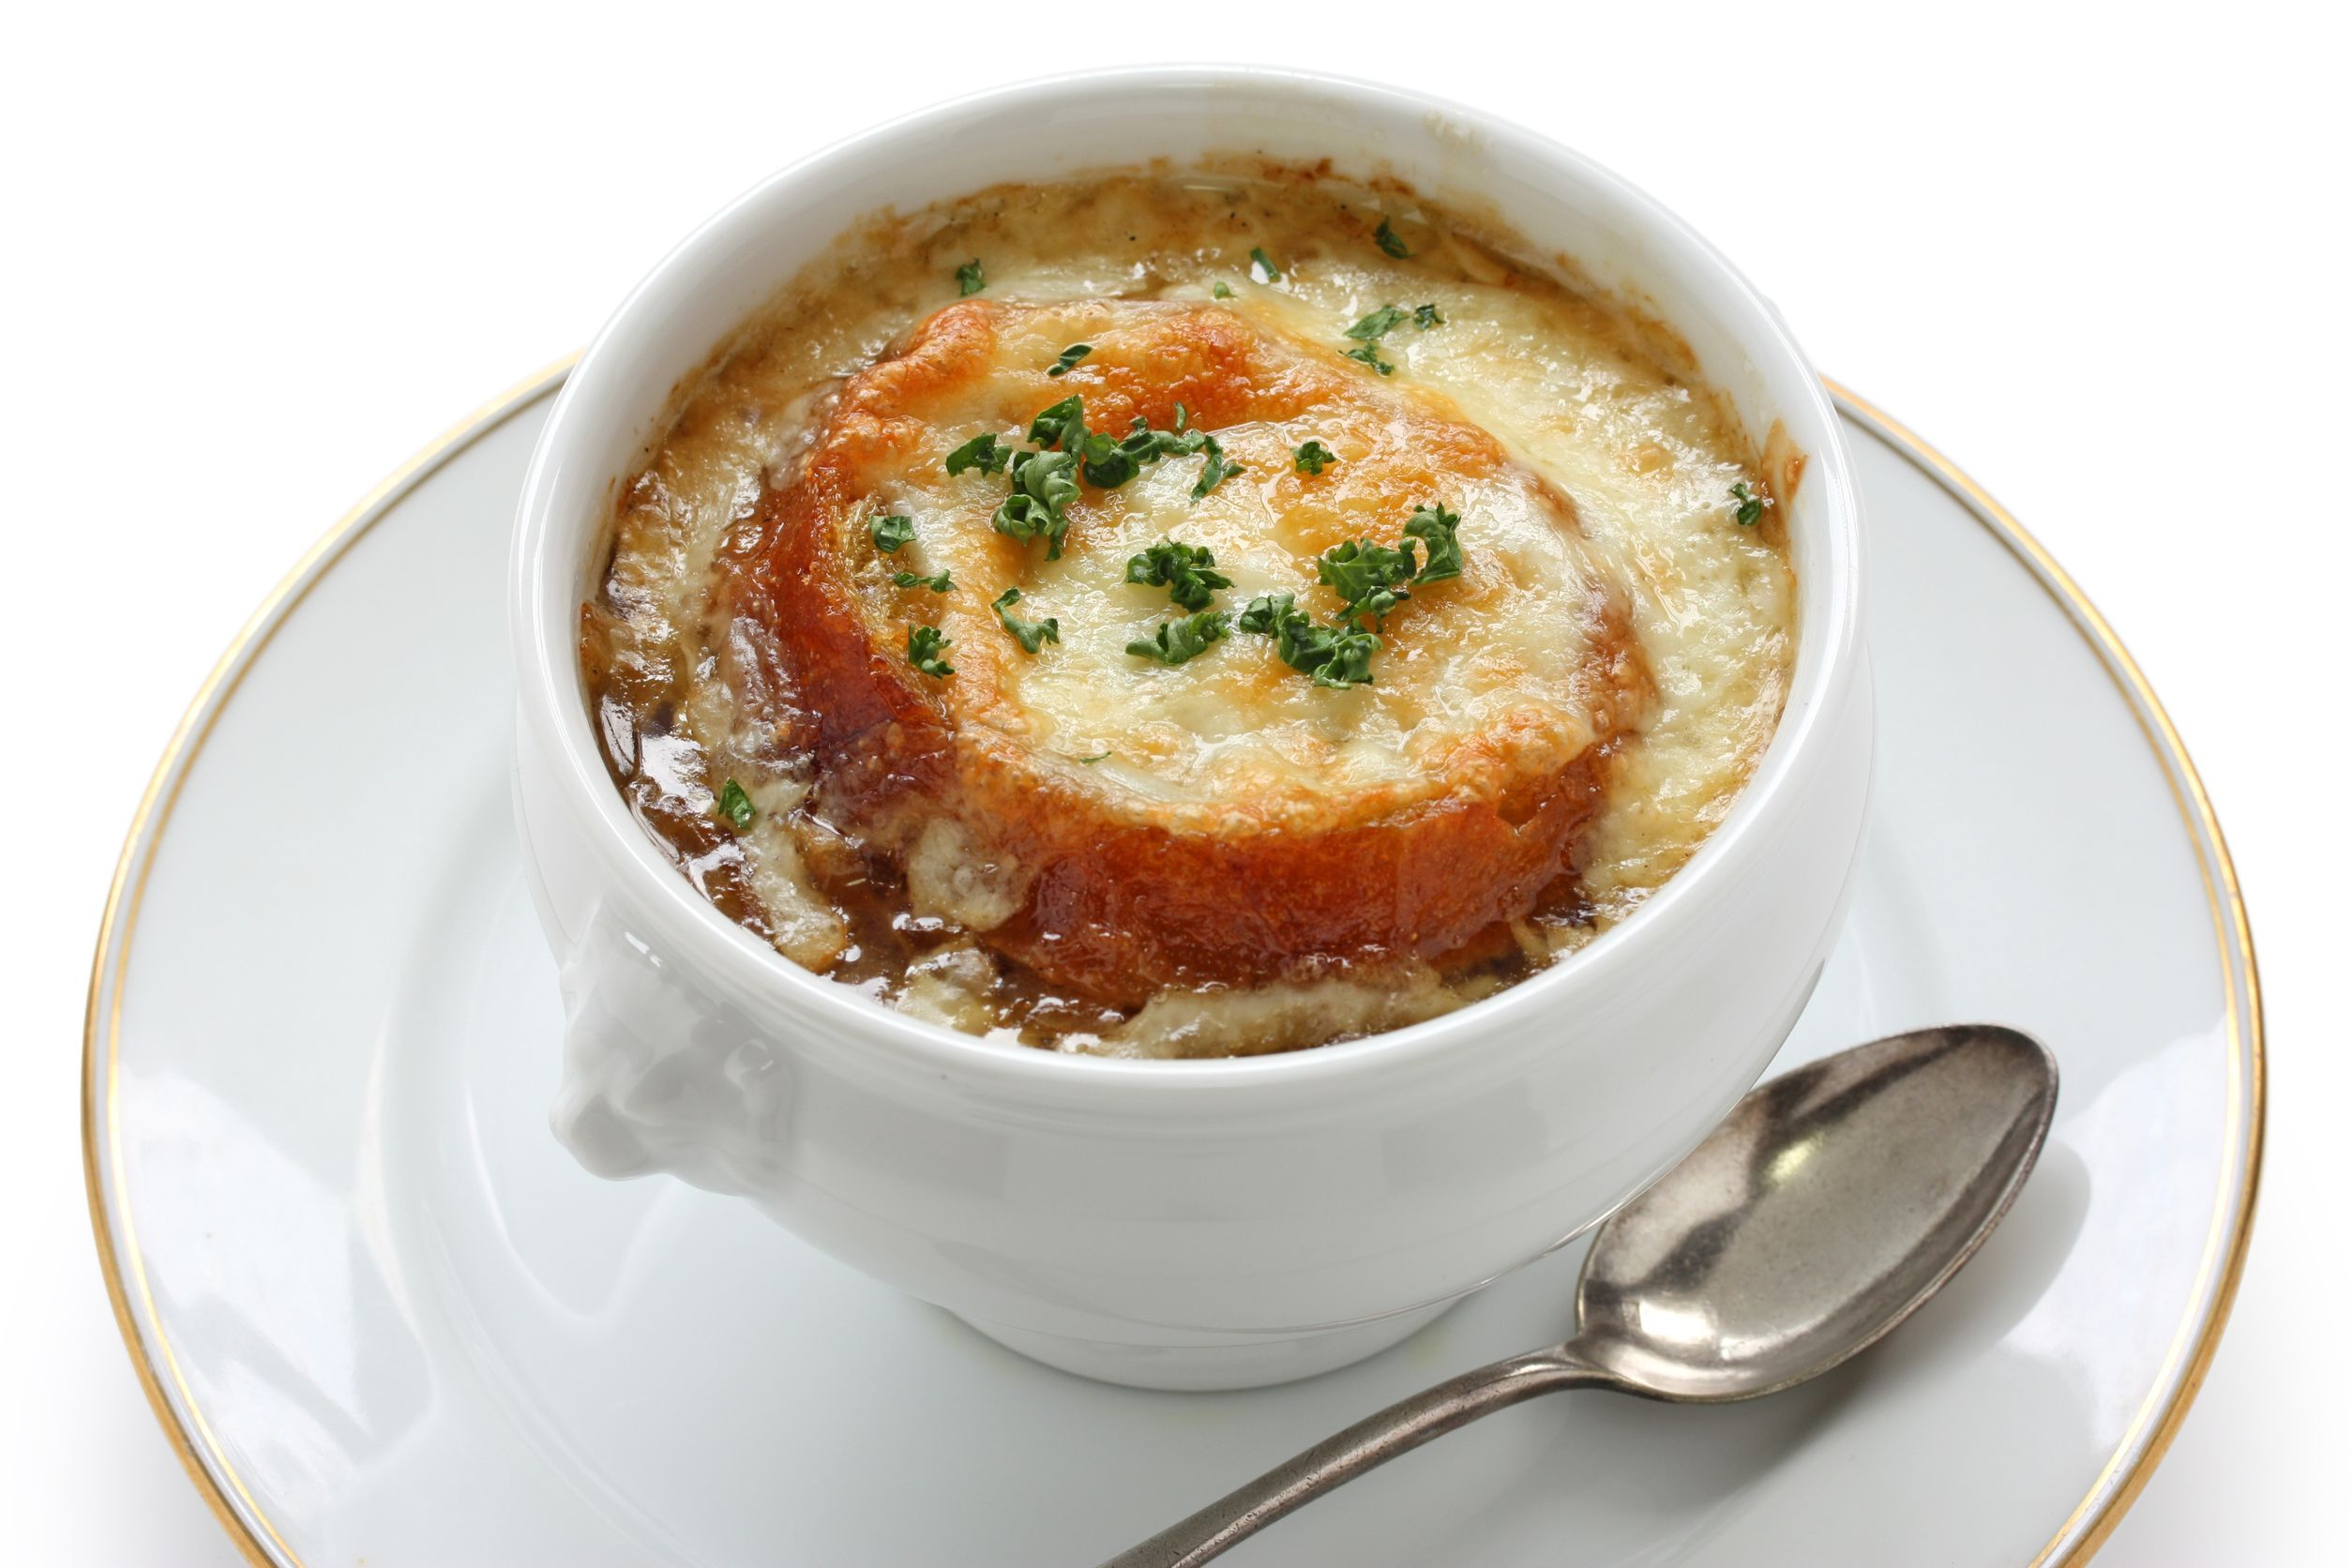 onion soup french onion soup drop onion soup dip french onion soup ...